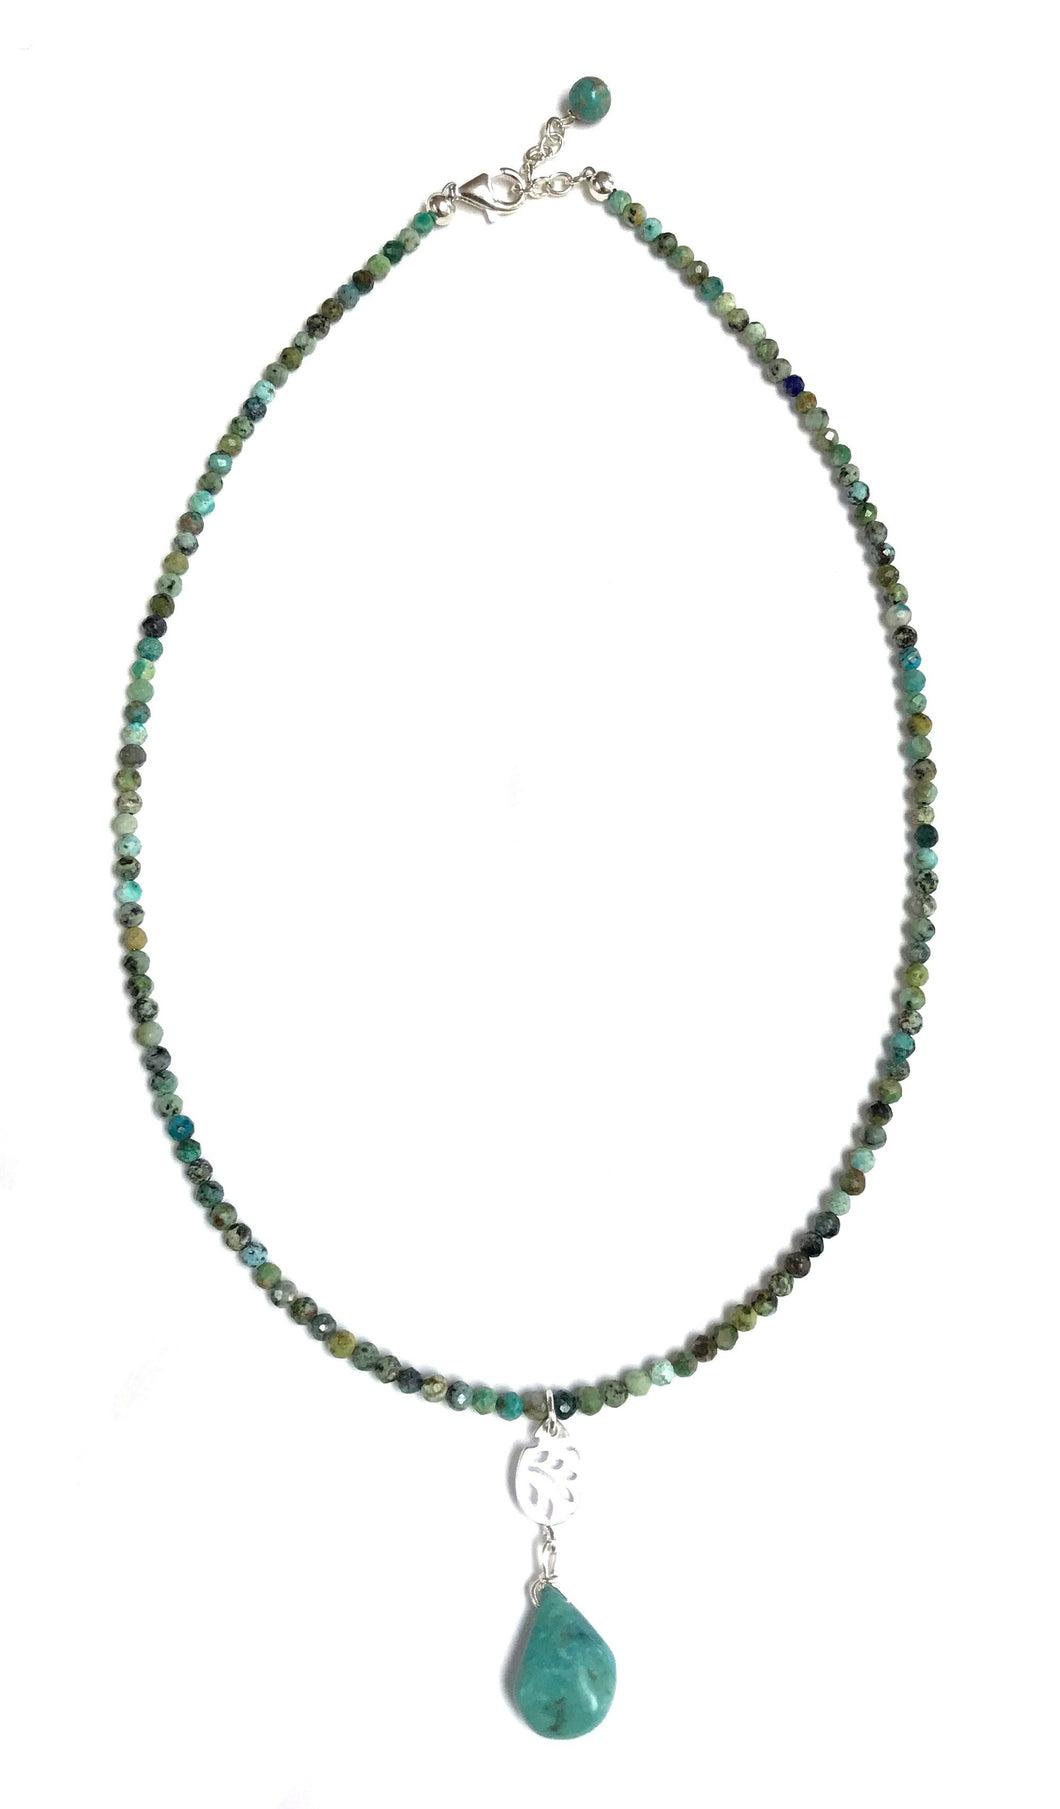 African Turquoise Necklace!